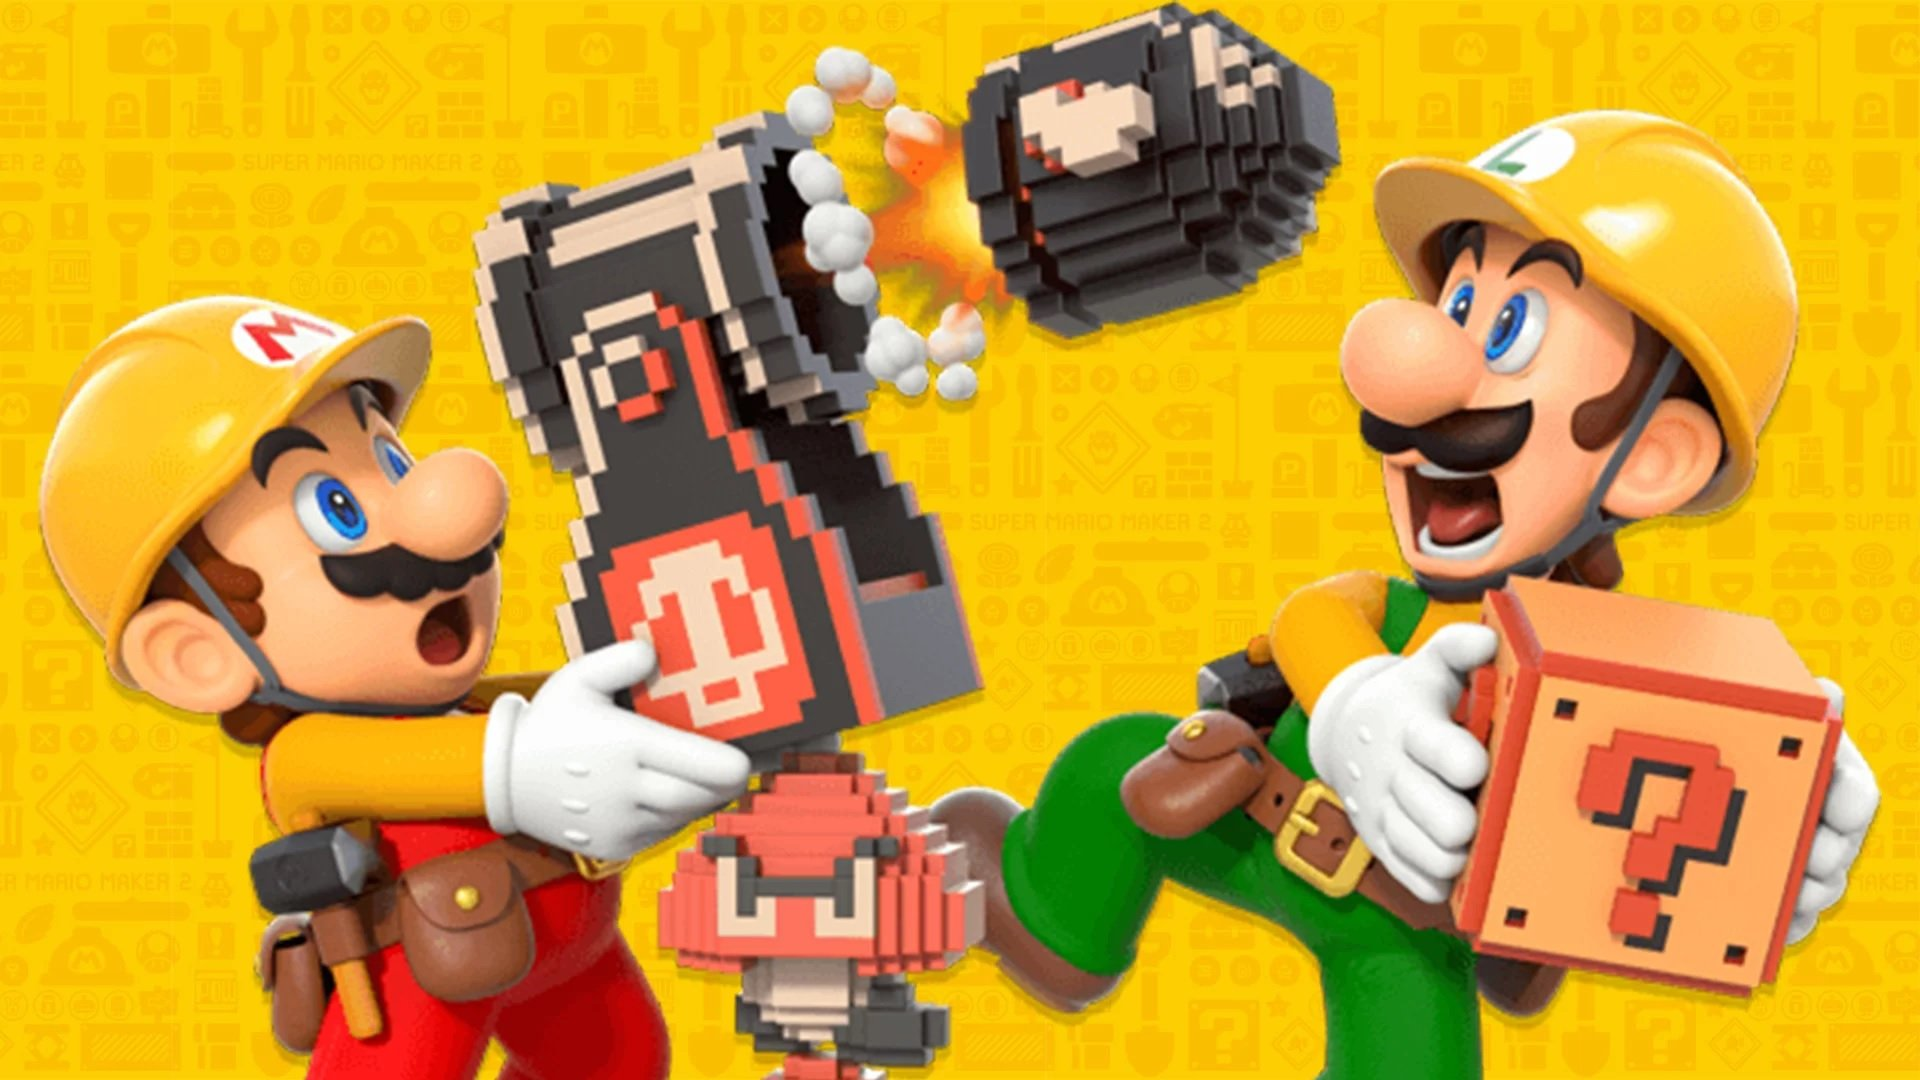 A whole host of new items, gizmos, terrains, and powerups are available in Super Mario Maker 2.